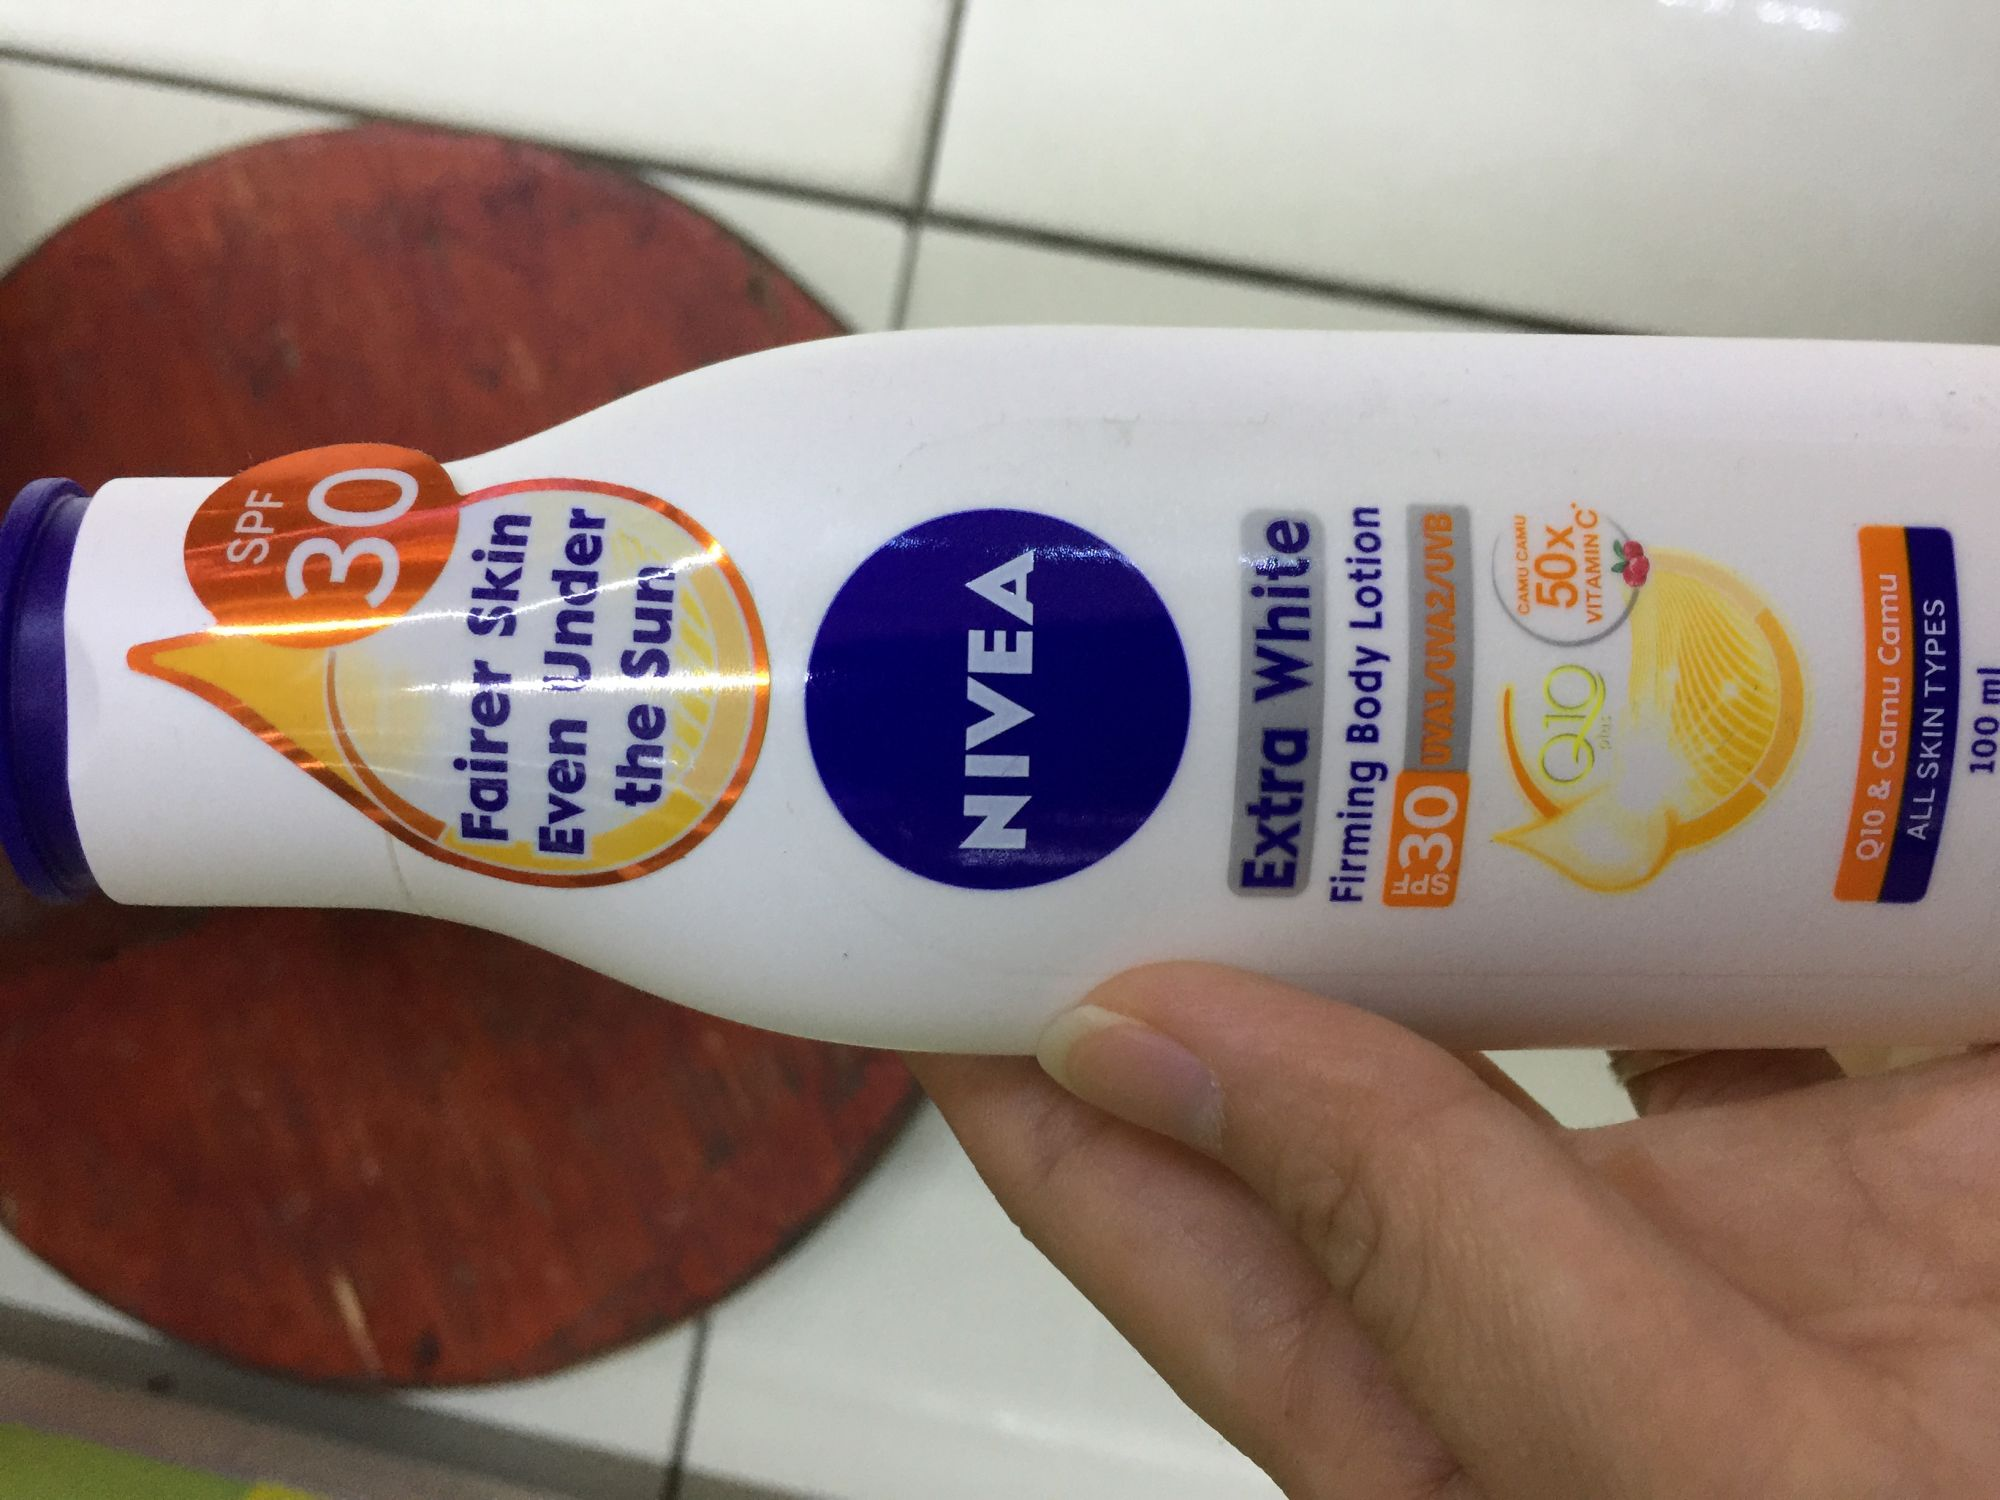 Nivea Instant White Firming Body Lotion Spf15 Reviews Extra 400 Ml Uv Whitening Is Not Sticky After I Applied It On My Or Hands Its Fragrance Refreshing And Can Feel The Be Absorbed